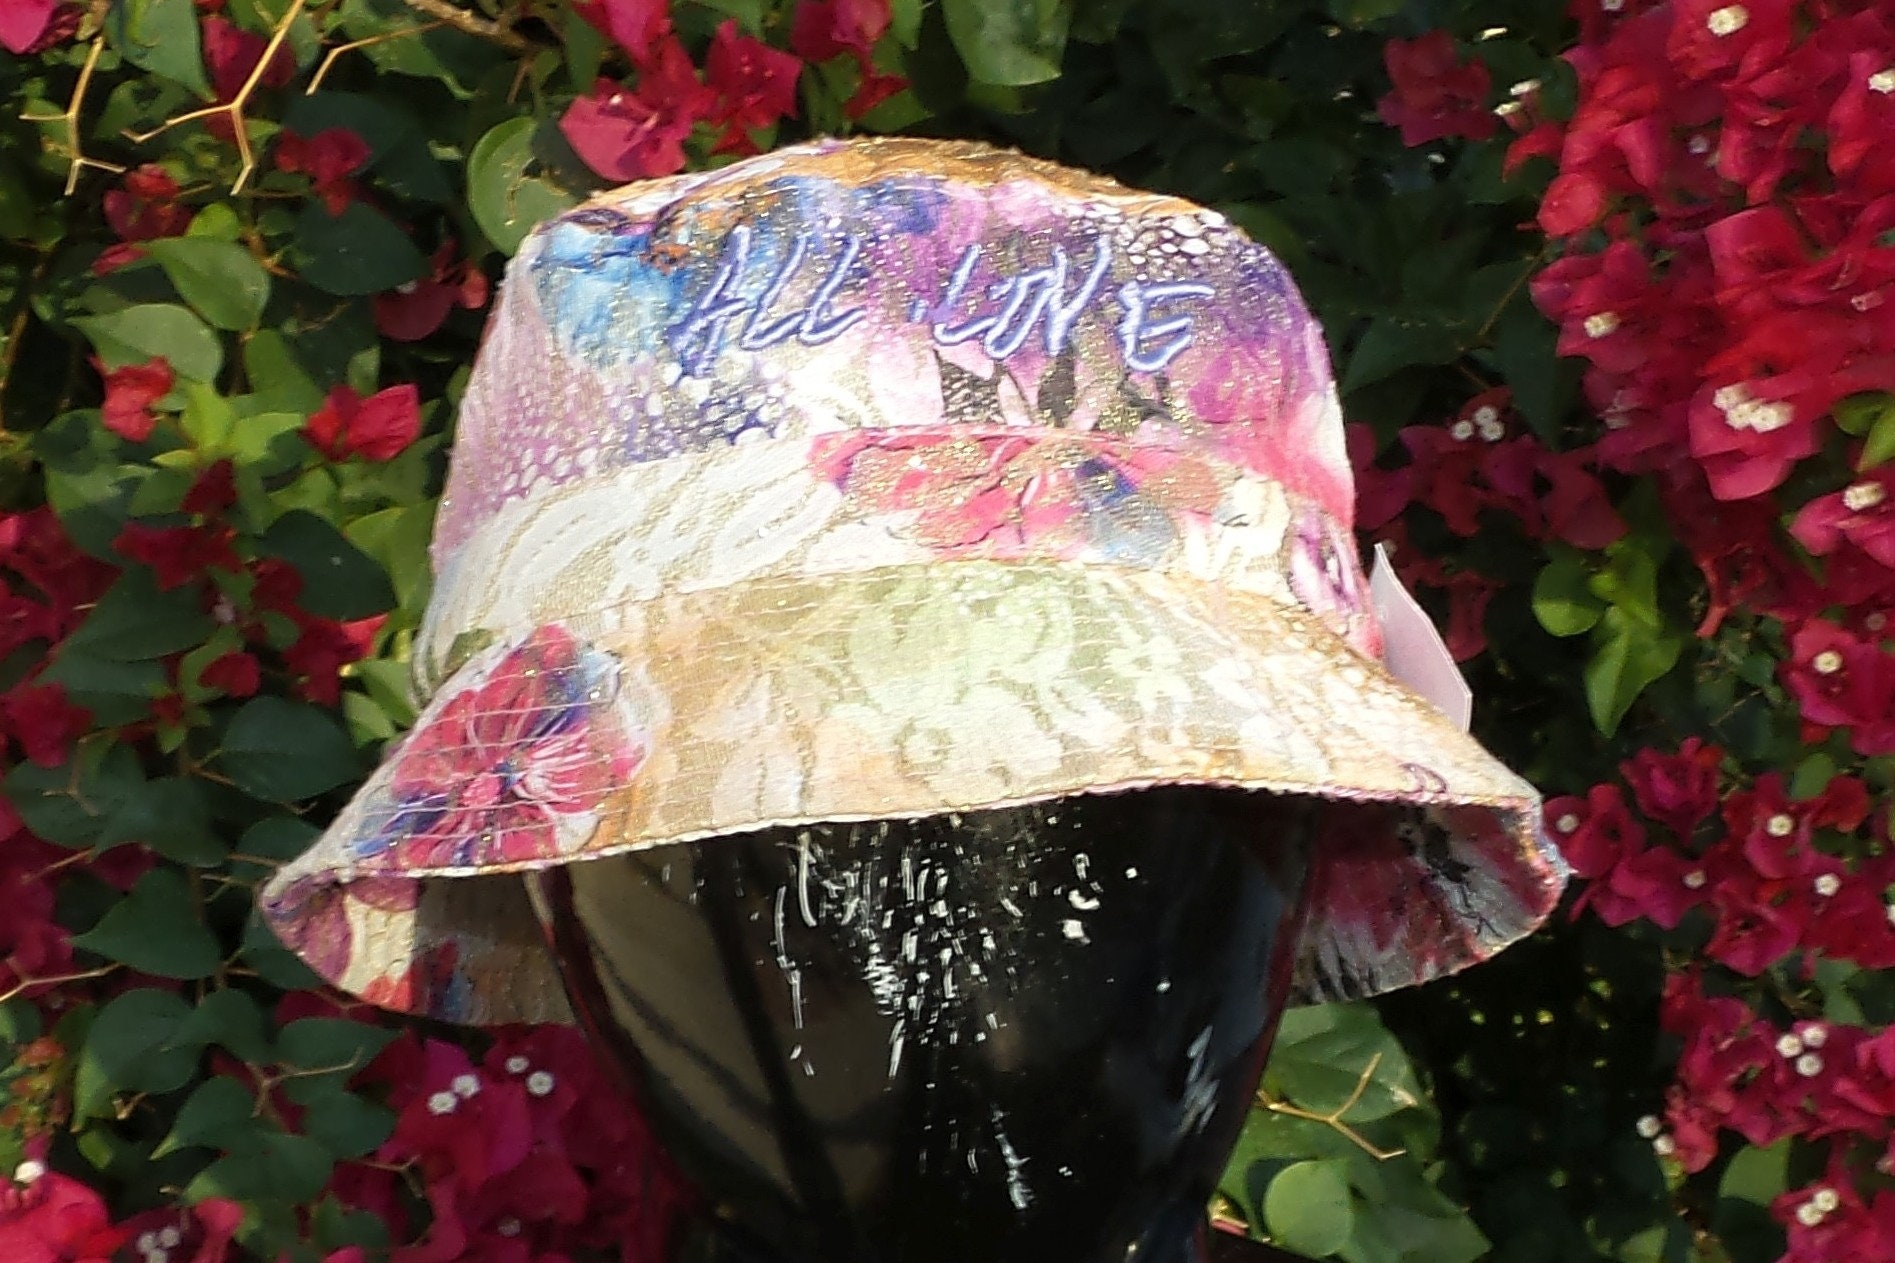 Bucket Hat - All Love (One-of-a-kind) add8bc4ffdc